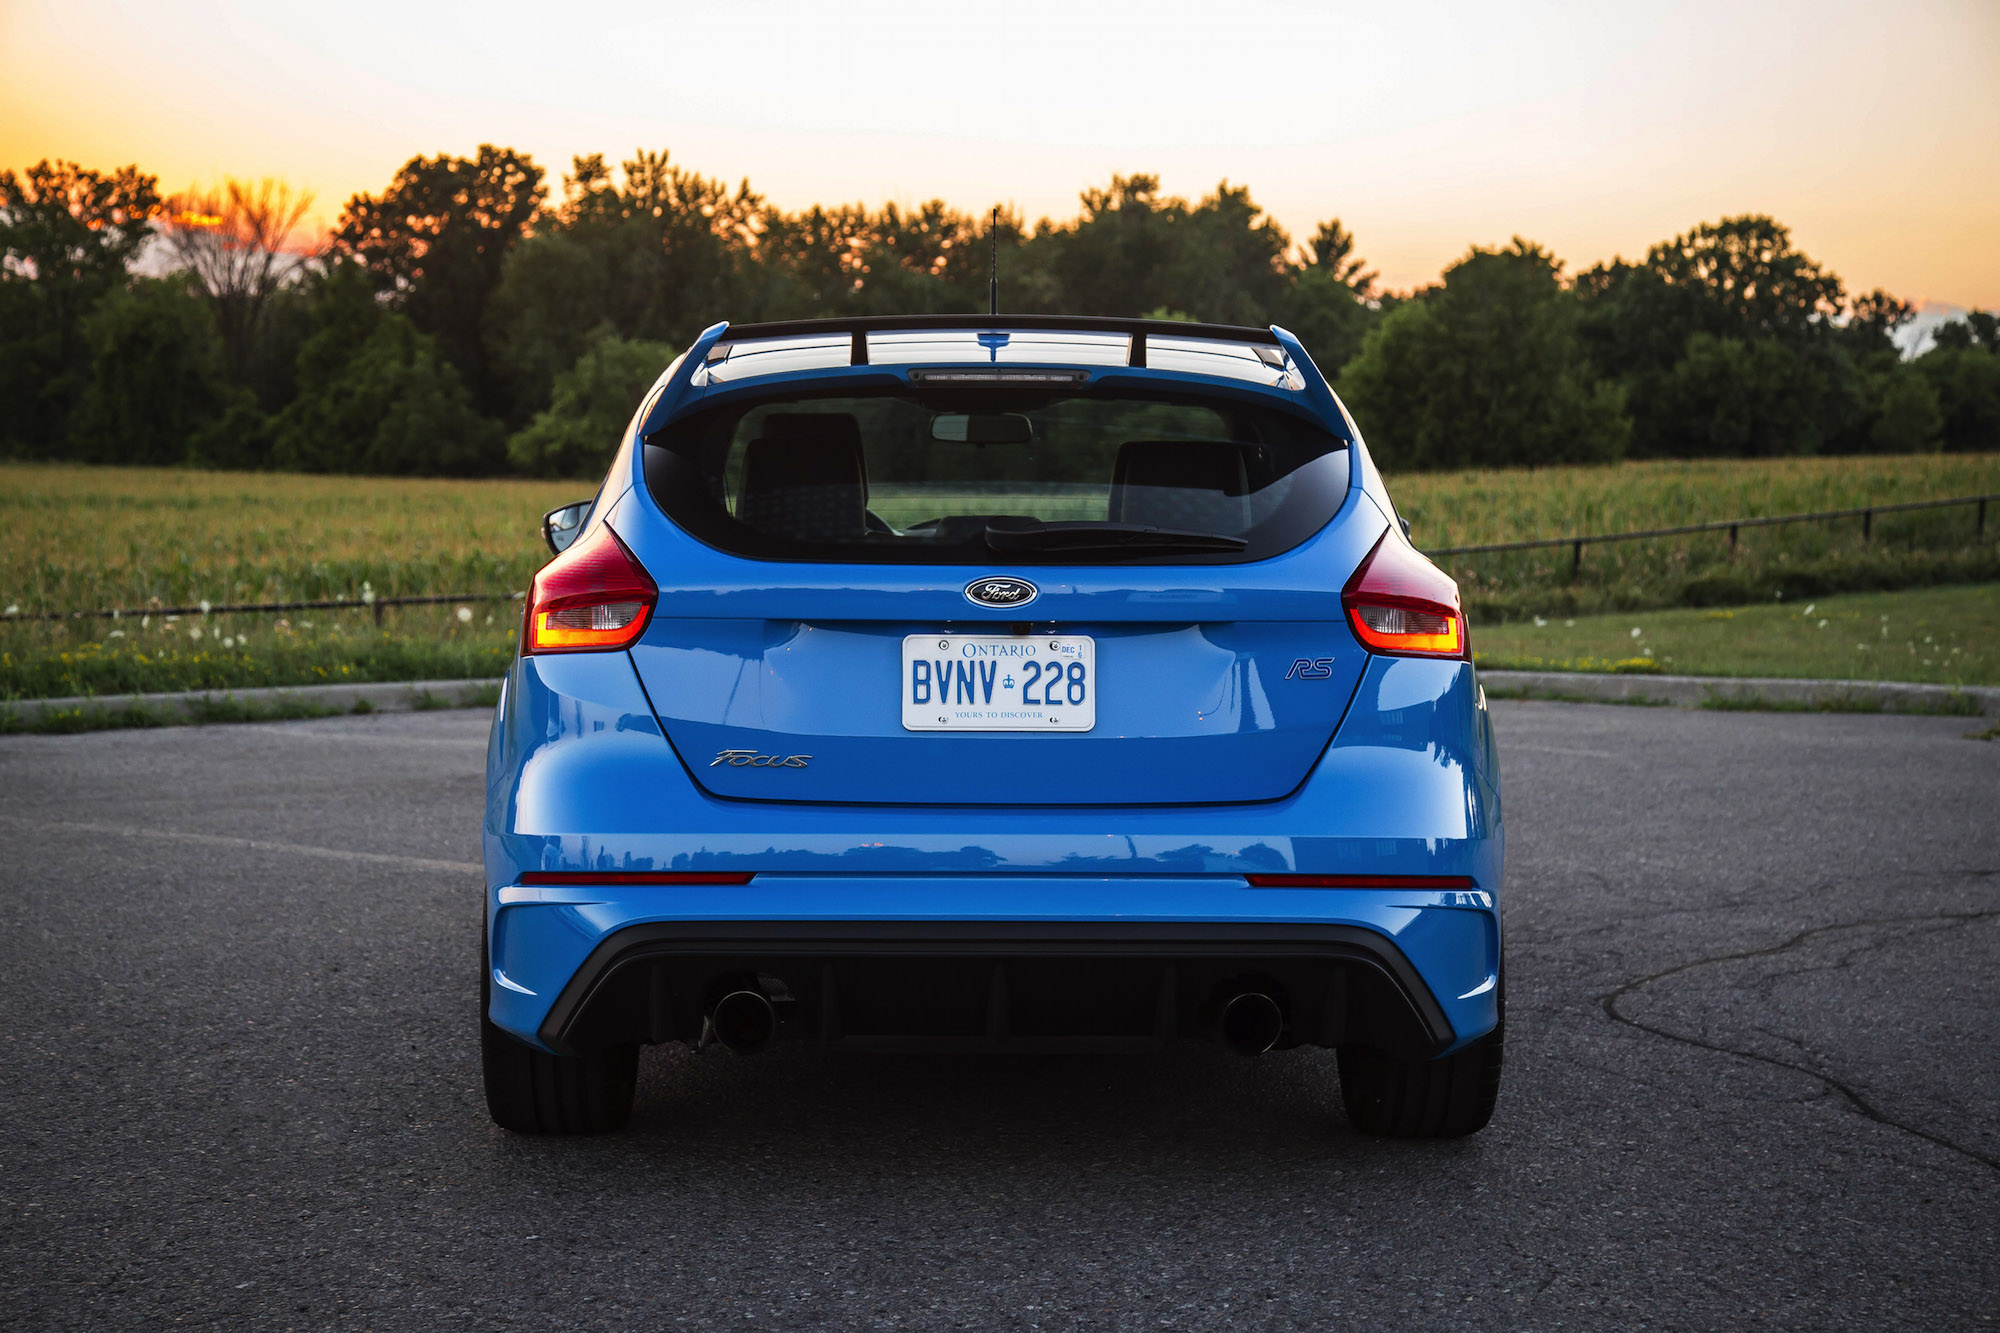 gets industry hyper territory confirmed rs hatch focus news ford car enters price with new